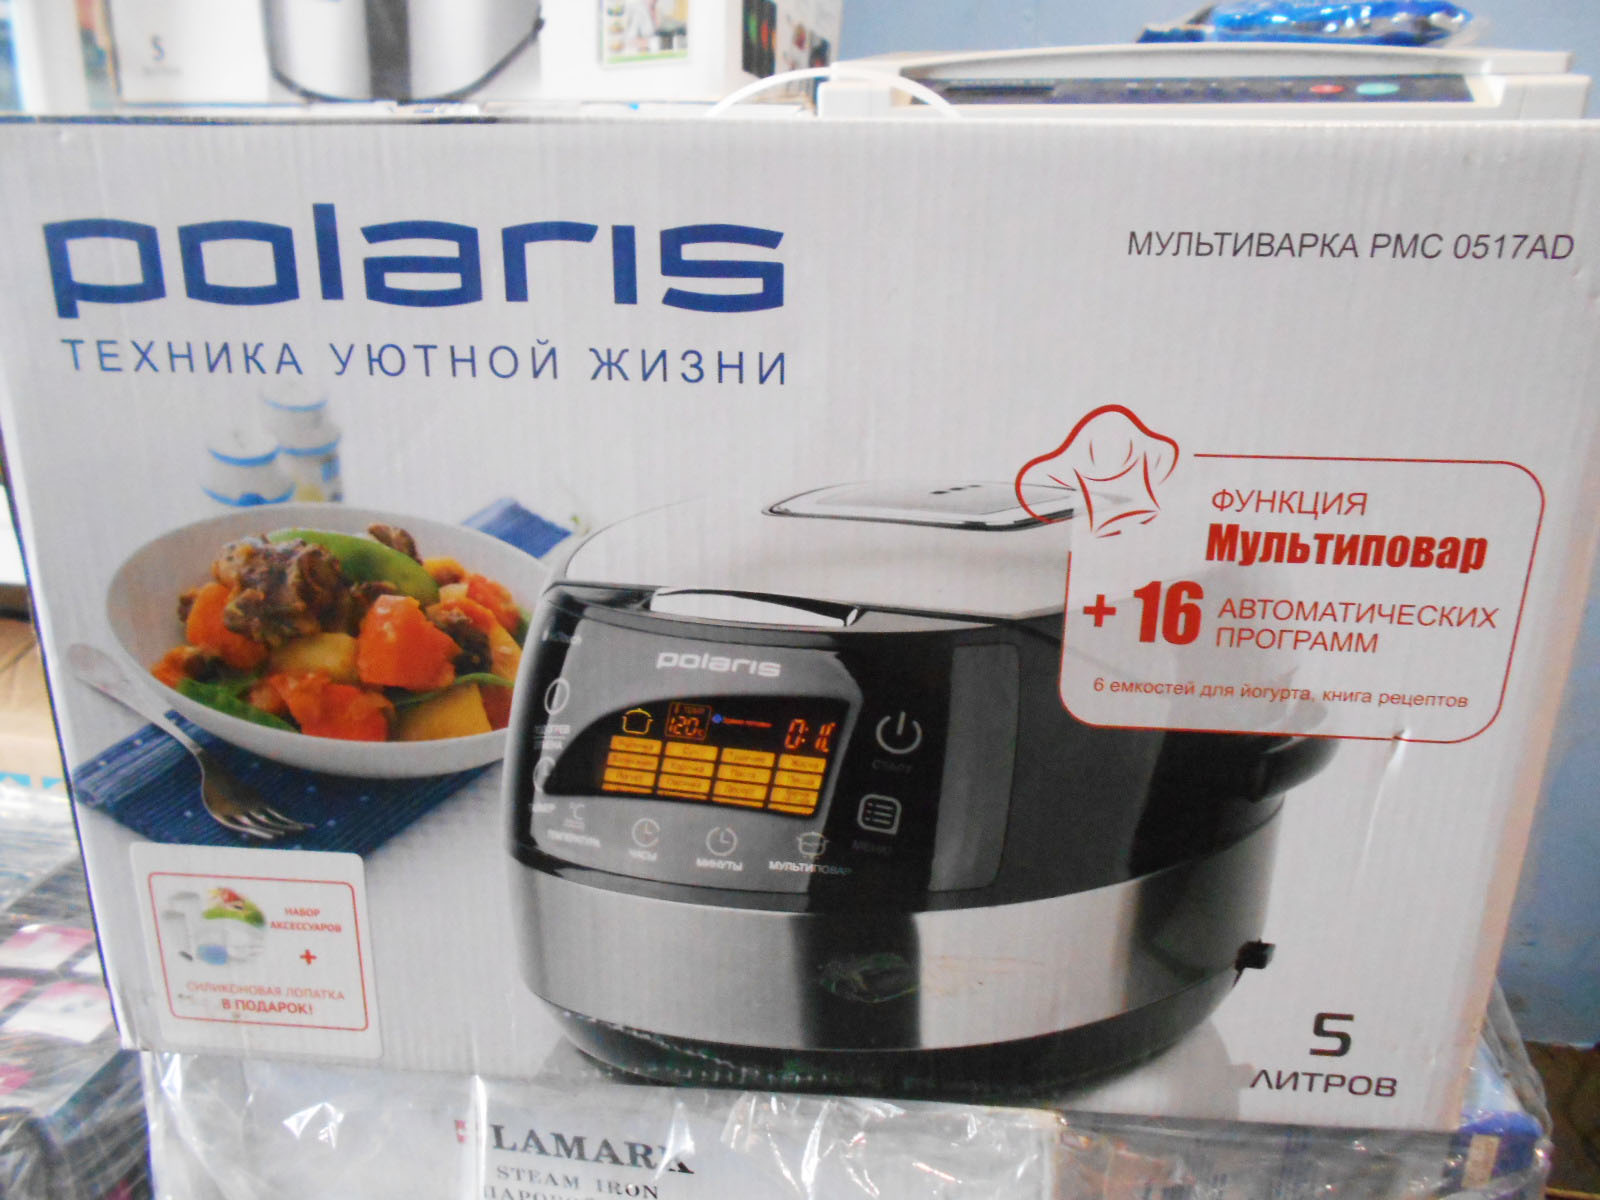 Polaris pmc 0517ad рецепты